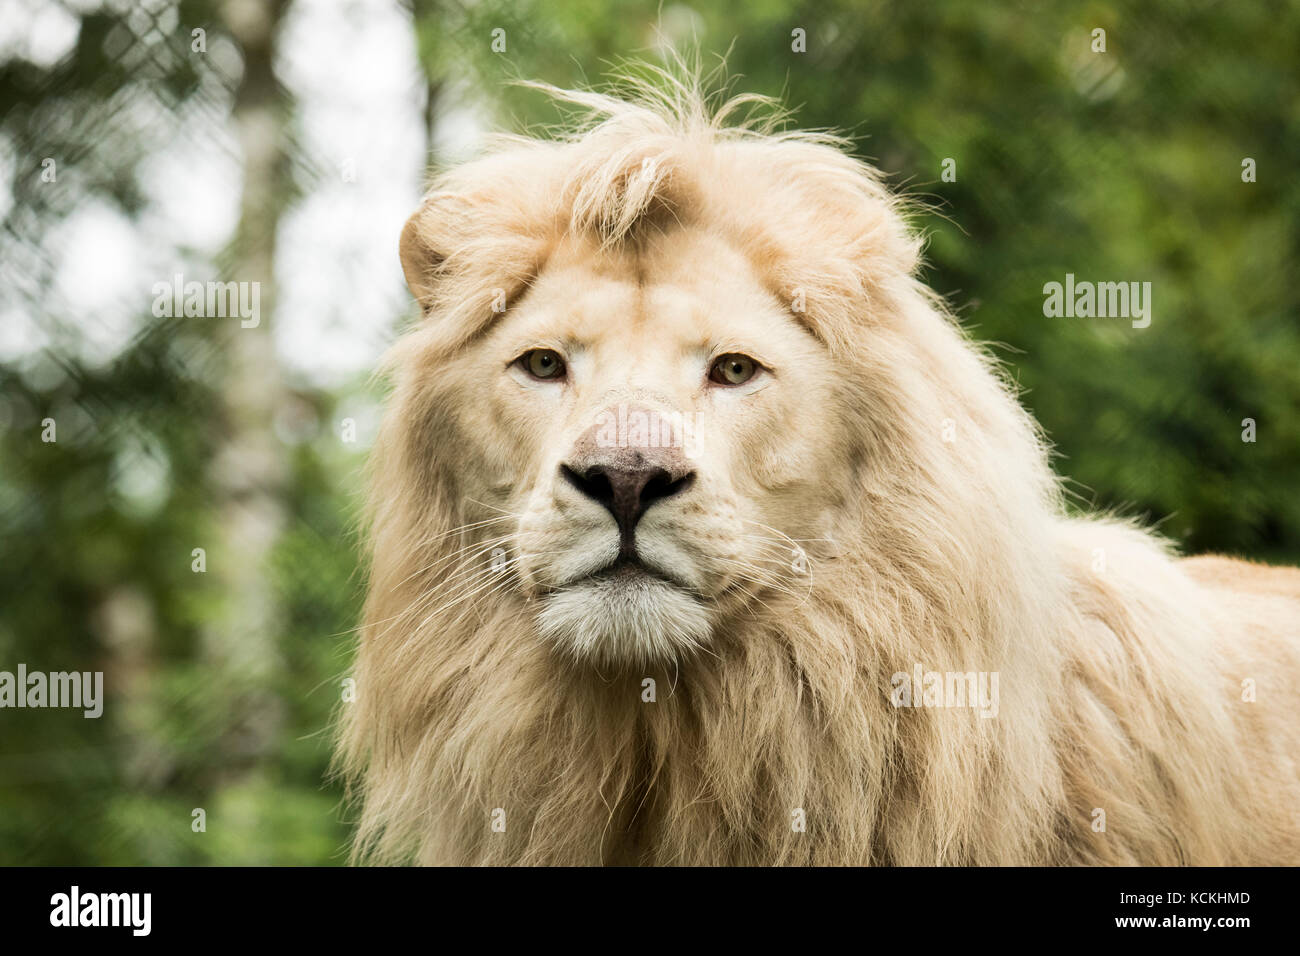 Headshot of a young white lion - Stock Image